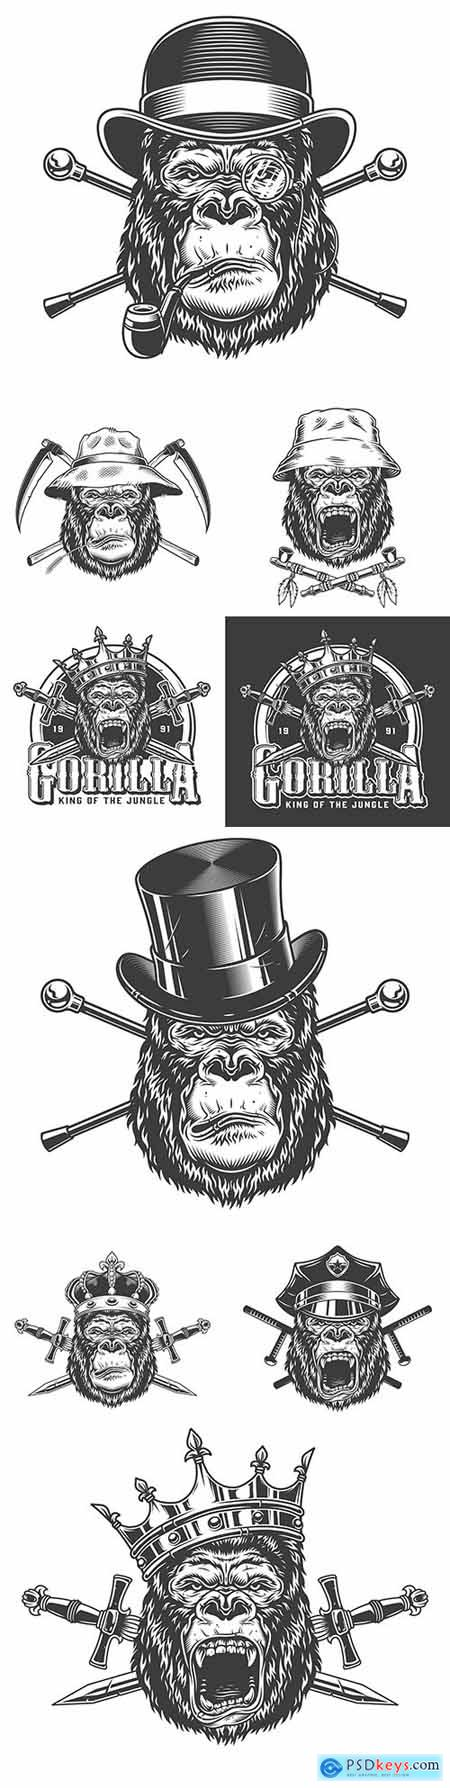 Head gorilla in hat with grunge objects design illustrations